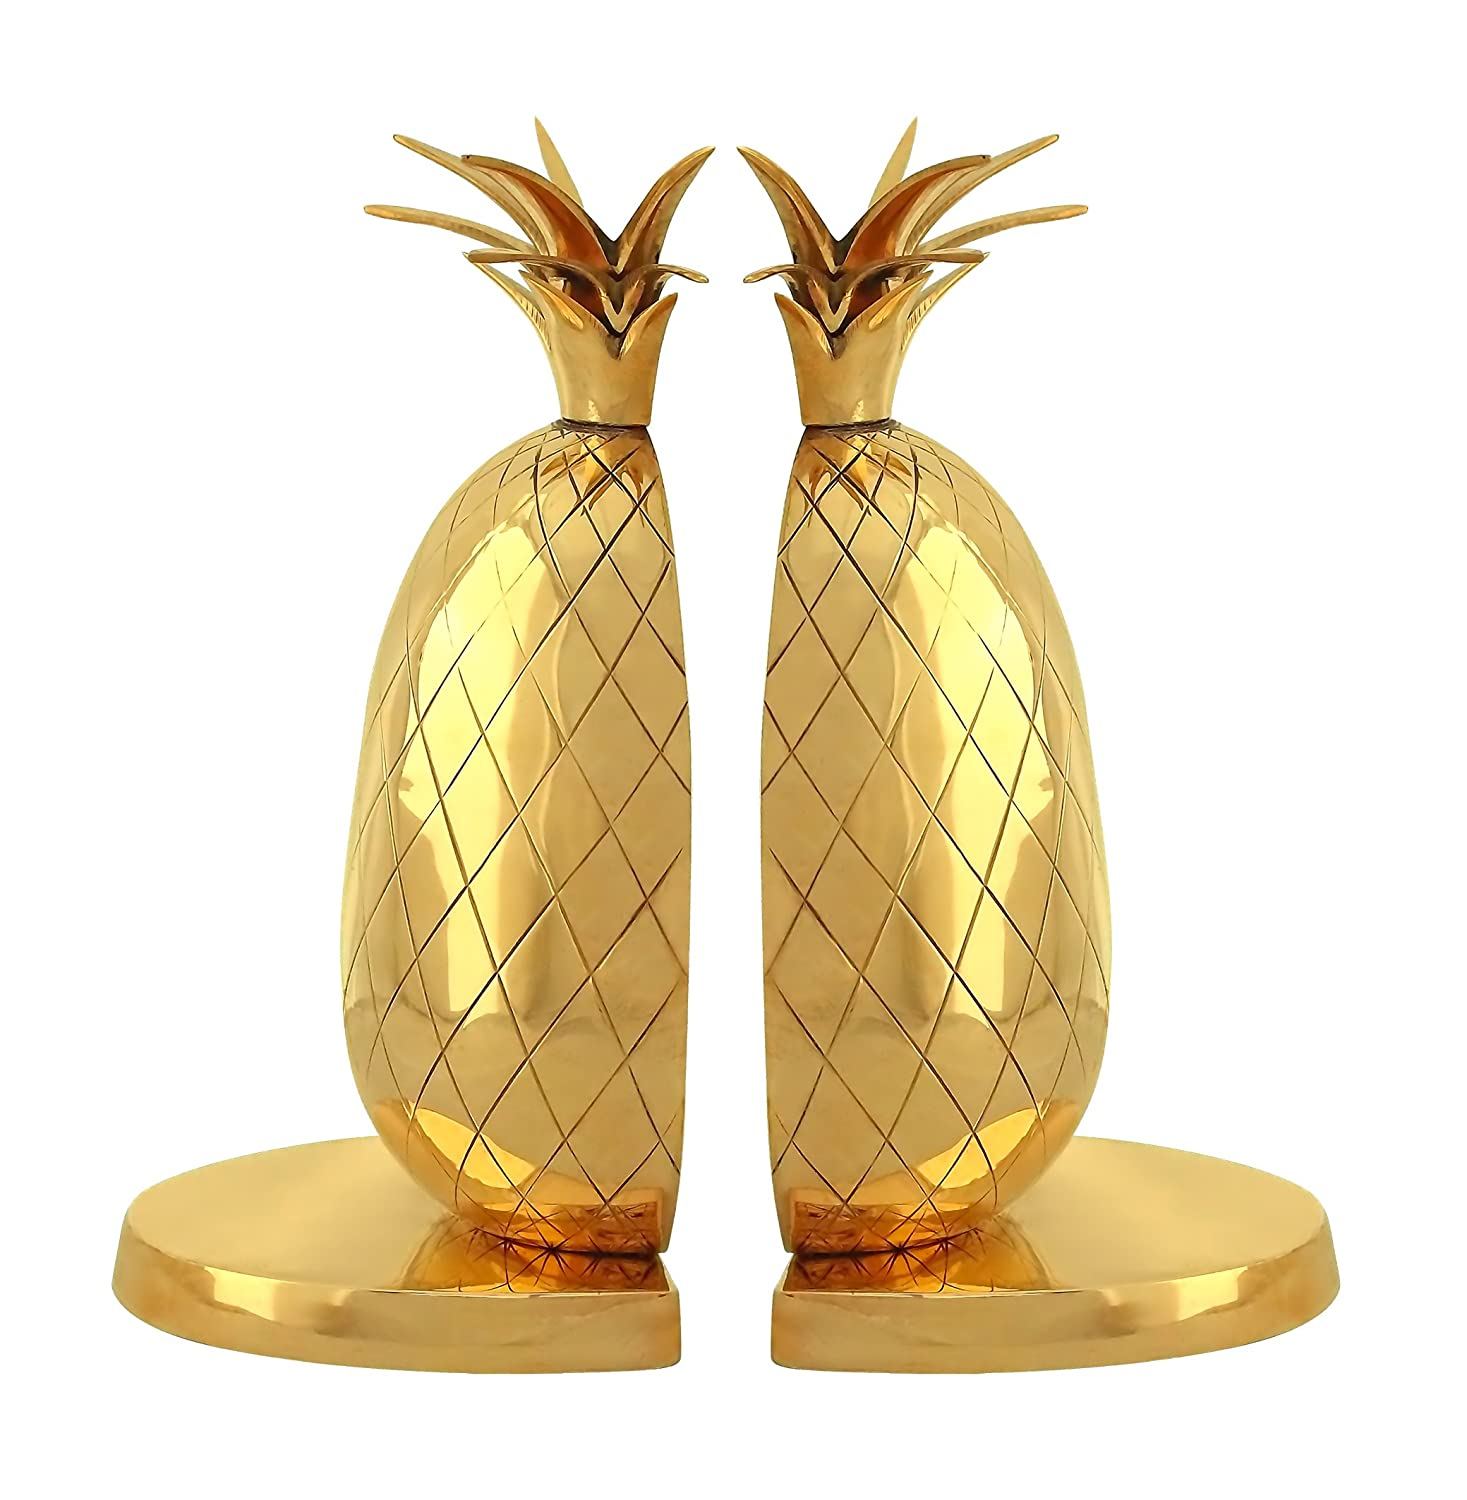 Gusums Messing Pineapple Bookend, Gold, 22 cm Mr Fredrik BOK0013